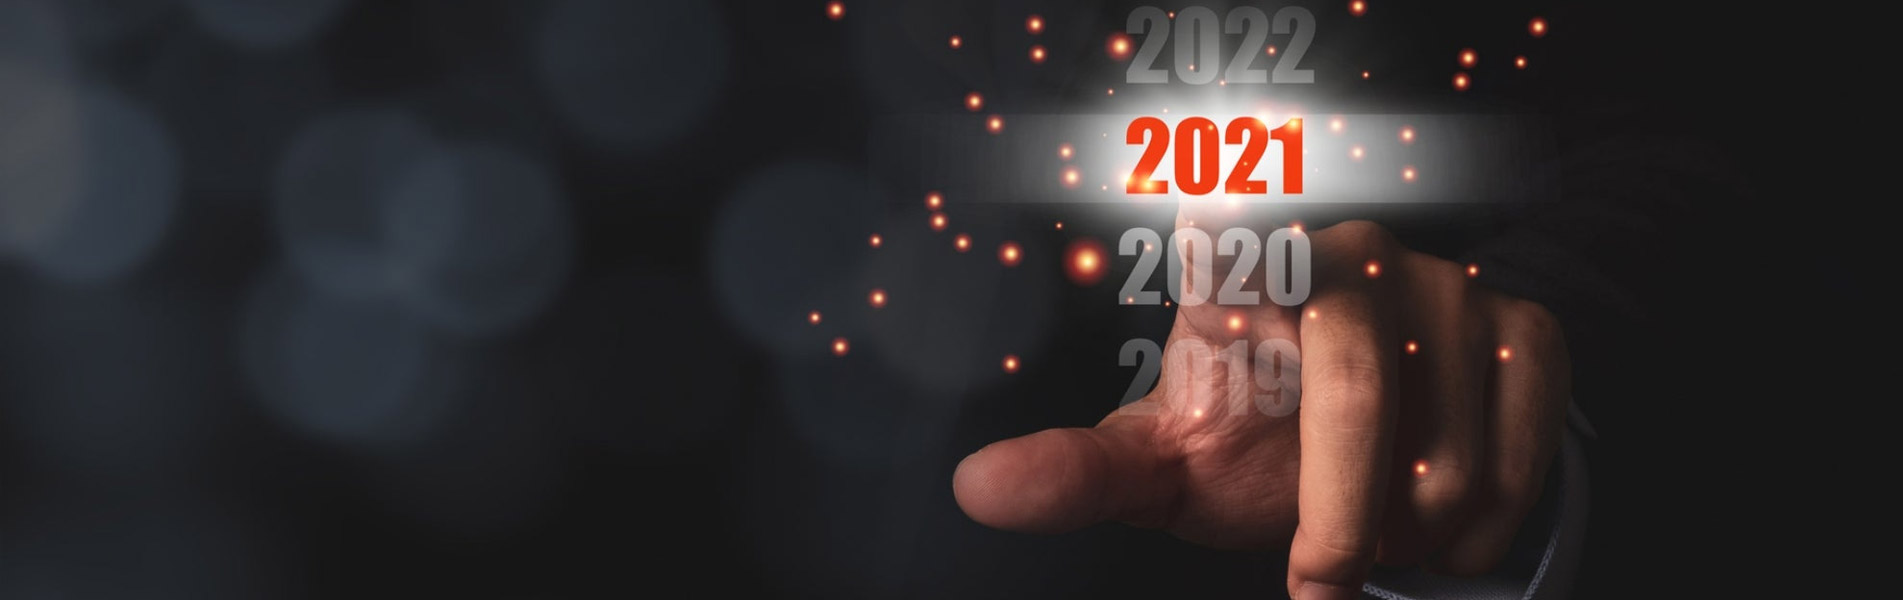 Preparing for 2021 business trends